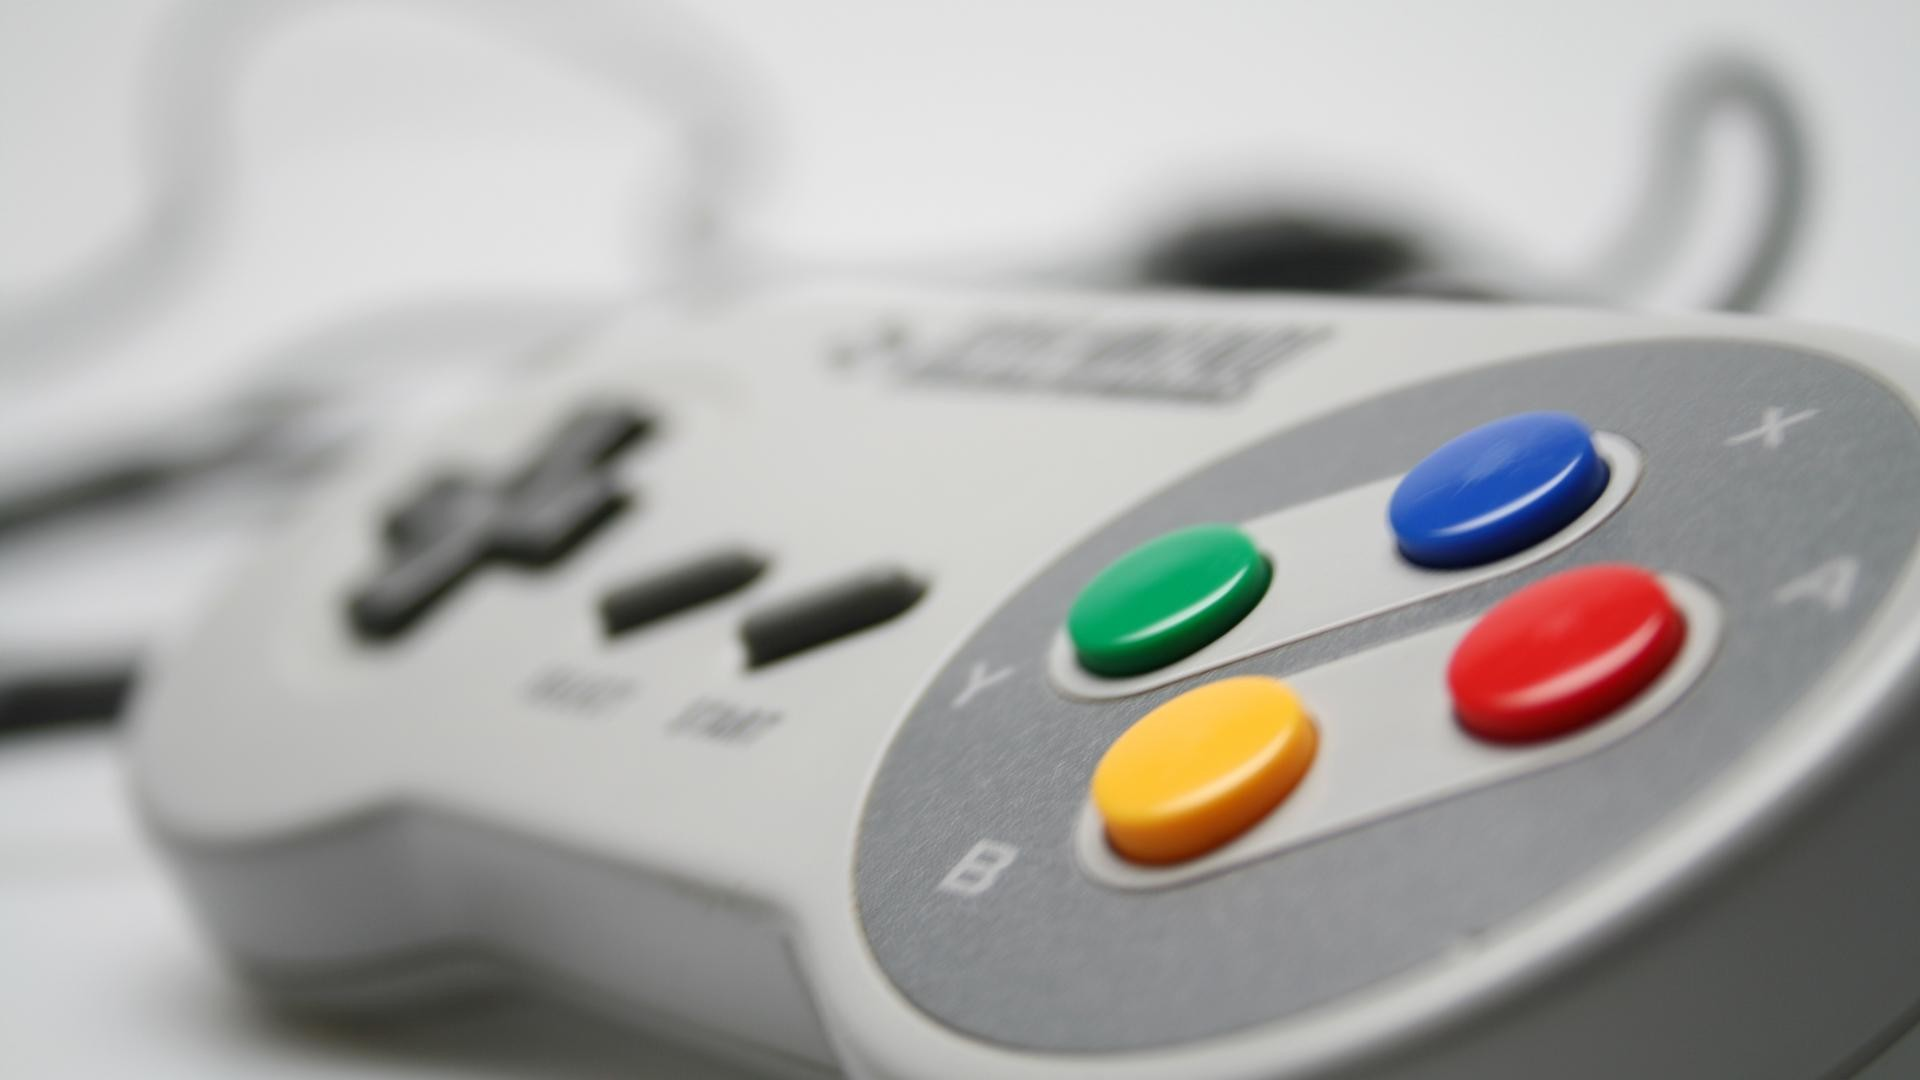 1920x1080 Super Nintendo Controller HD Wallpaper